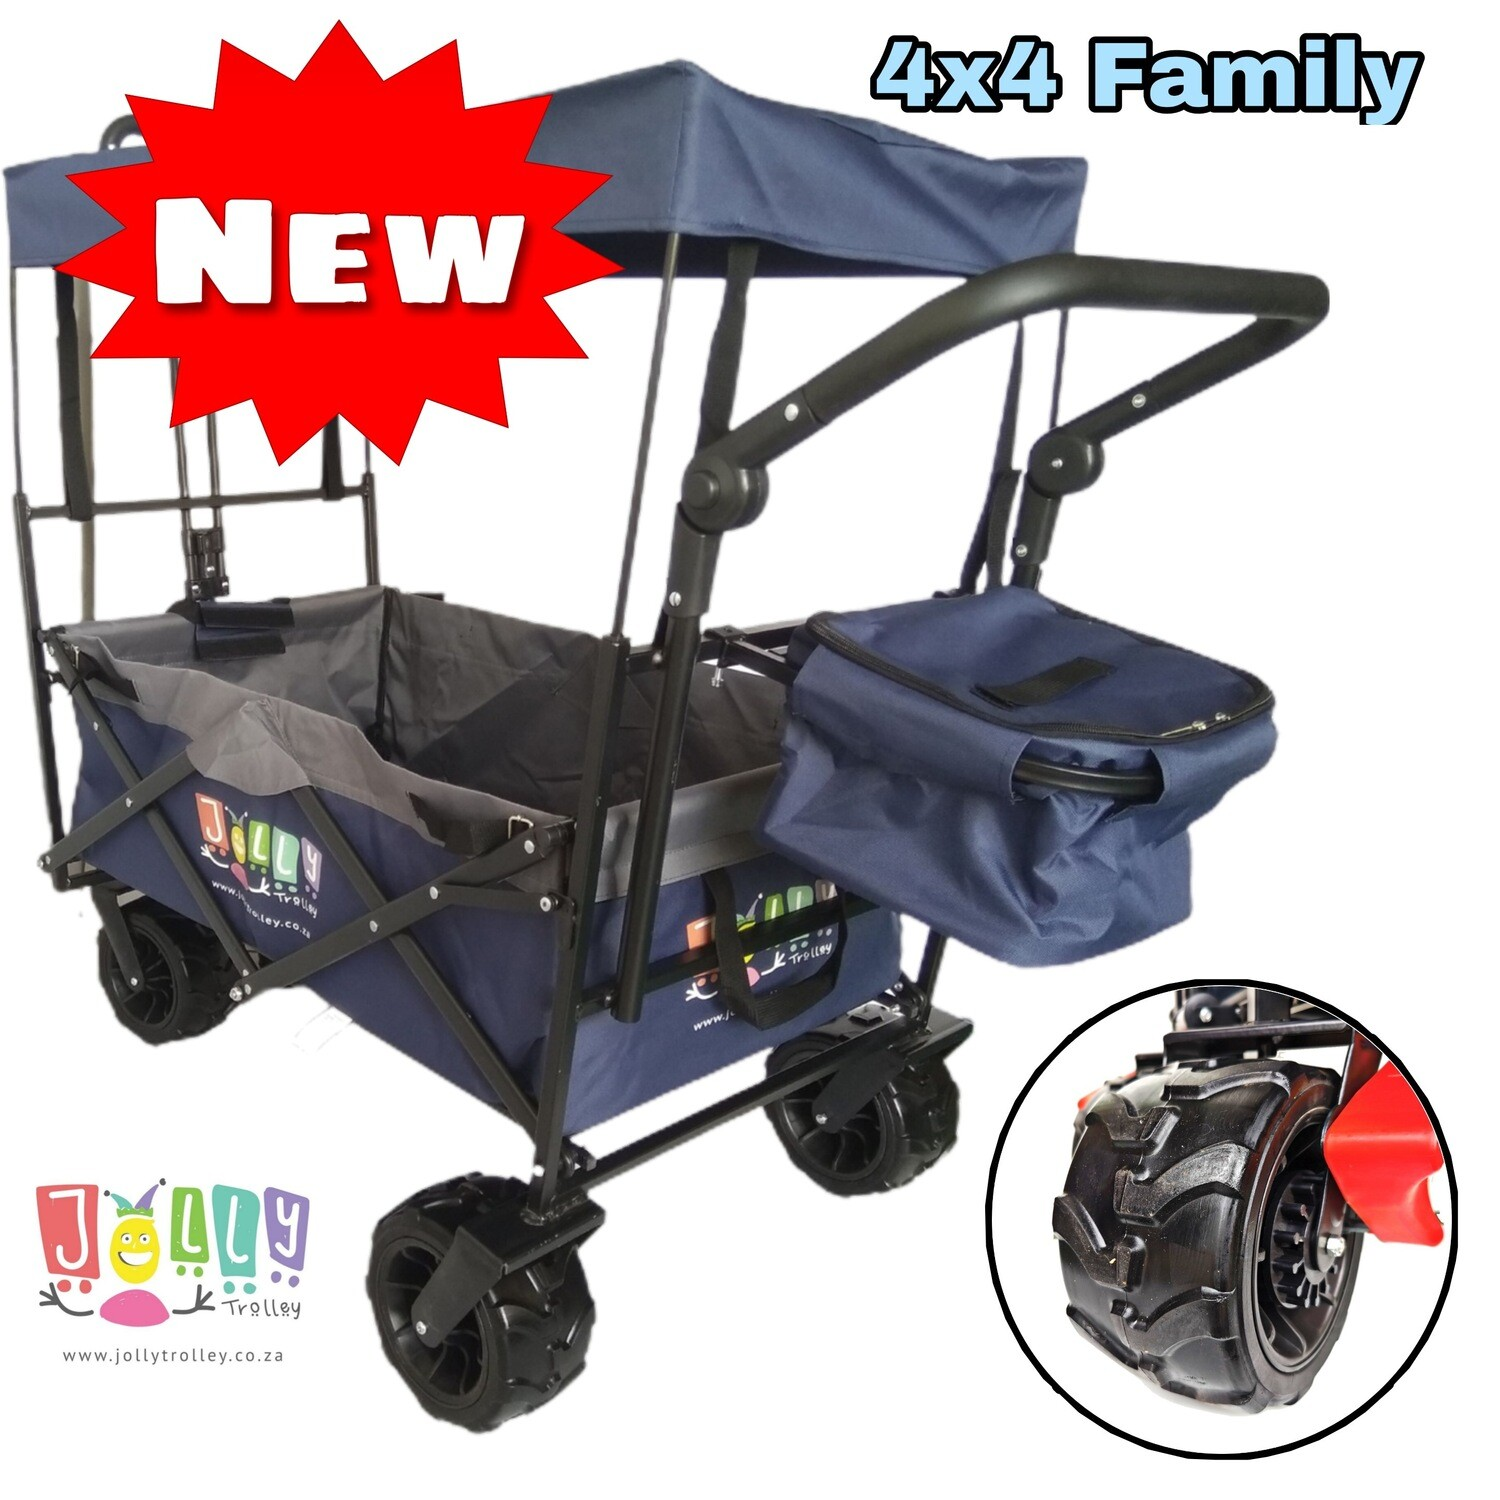 4X4 FAMILY Jolly Trolley with Canopy and Cooler bag